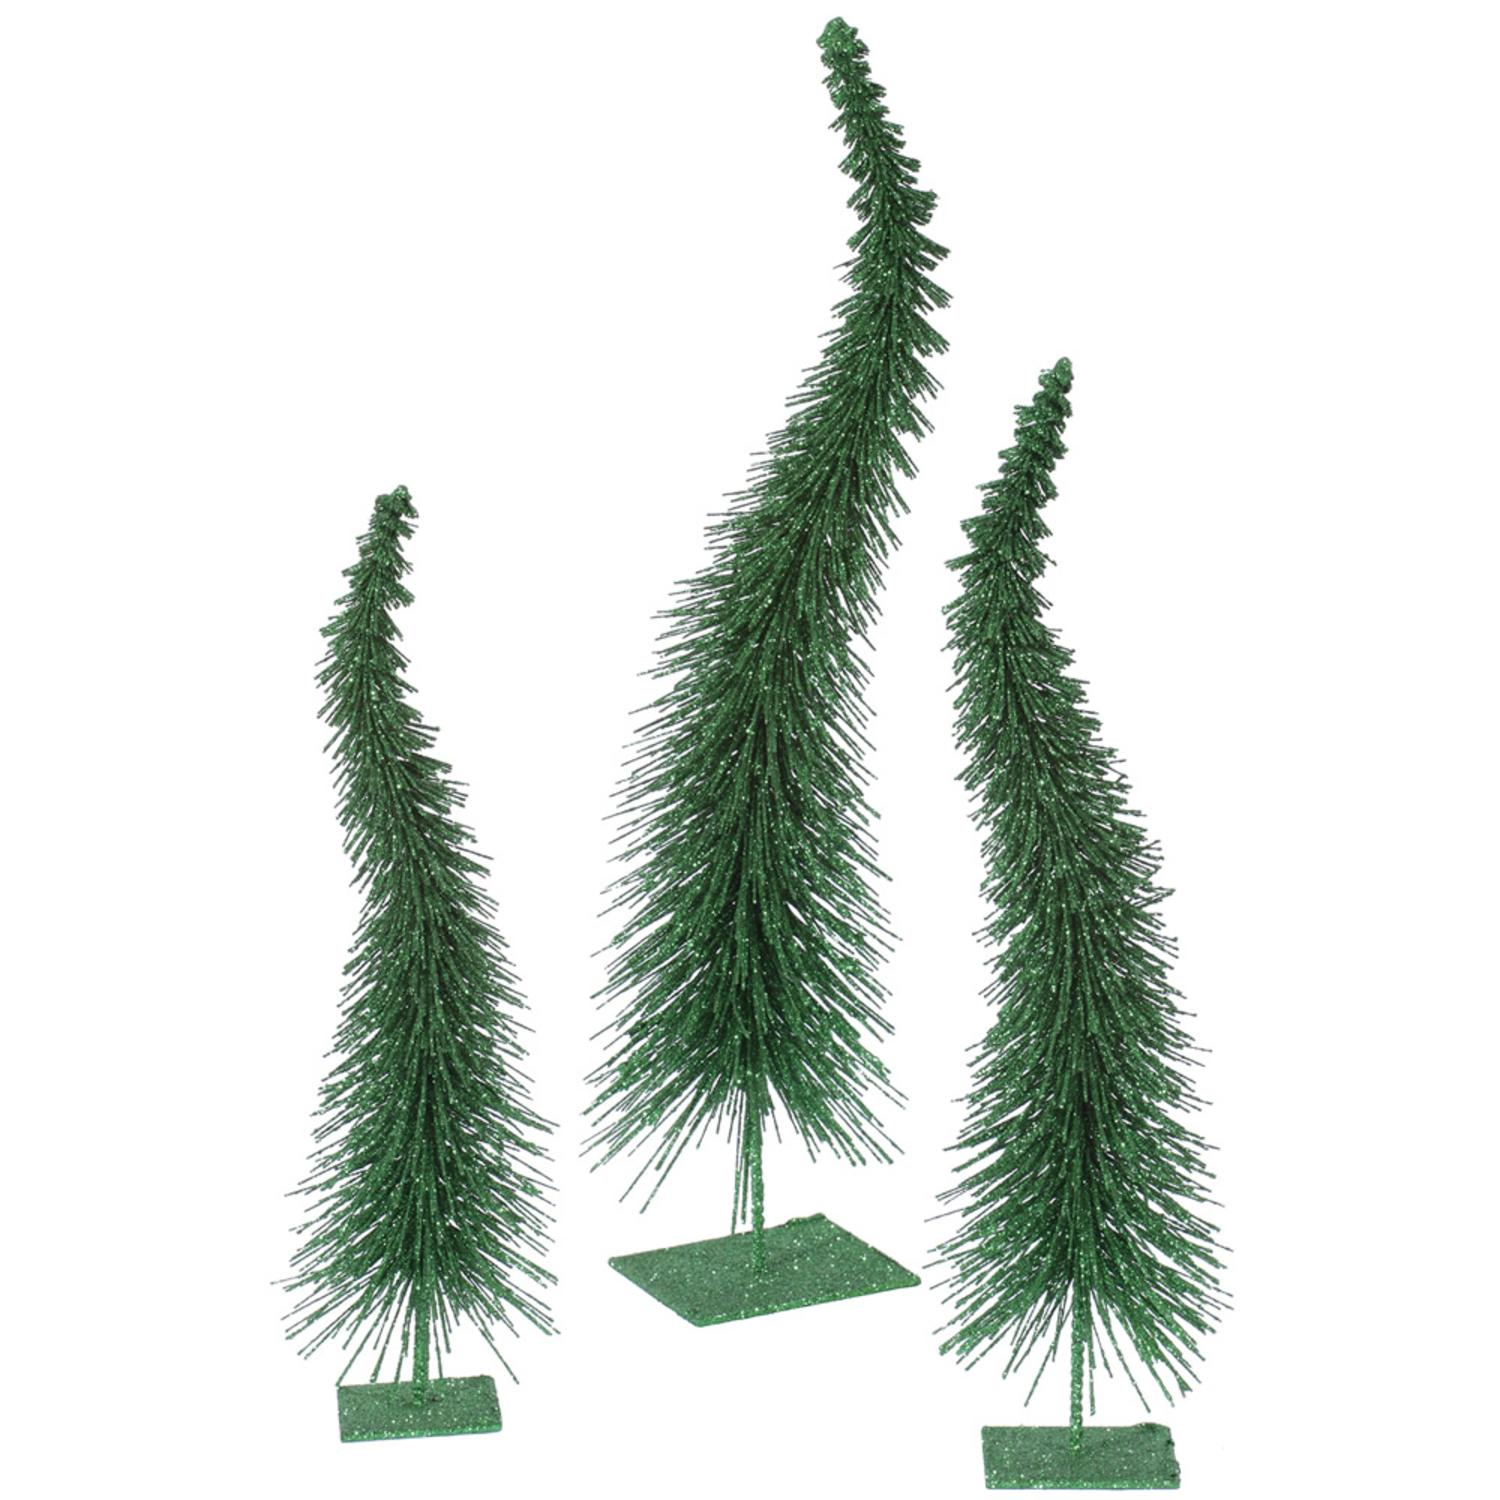 Set of 3 Emerald Green Glitter Curved Artificial Table Top Christmas Trees - Unlit